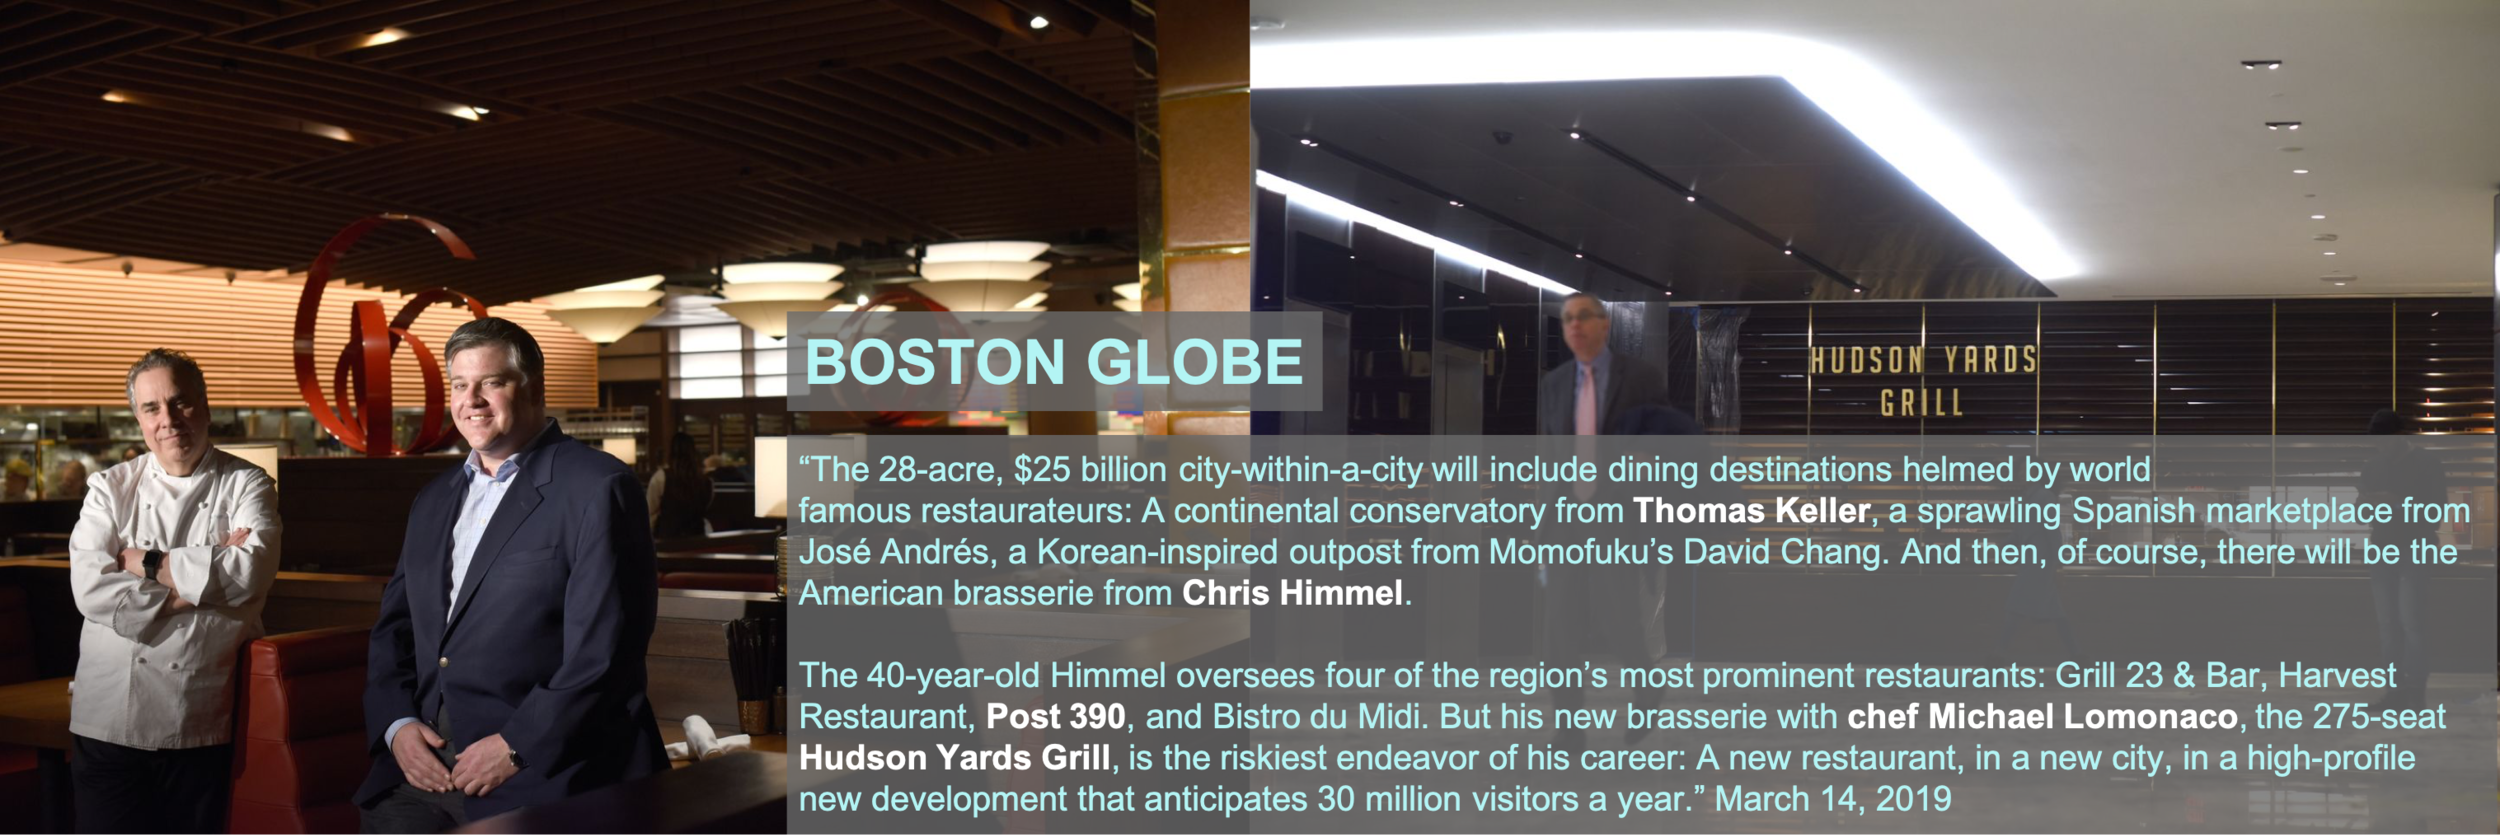 Boston Globe March 14 2019 Hudson Yards Grill.png